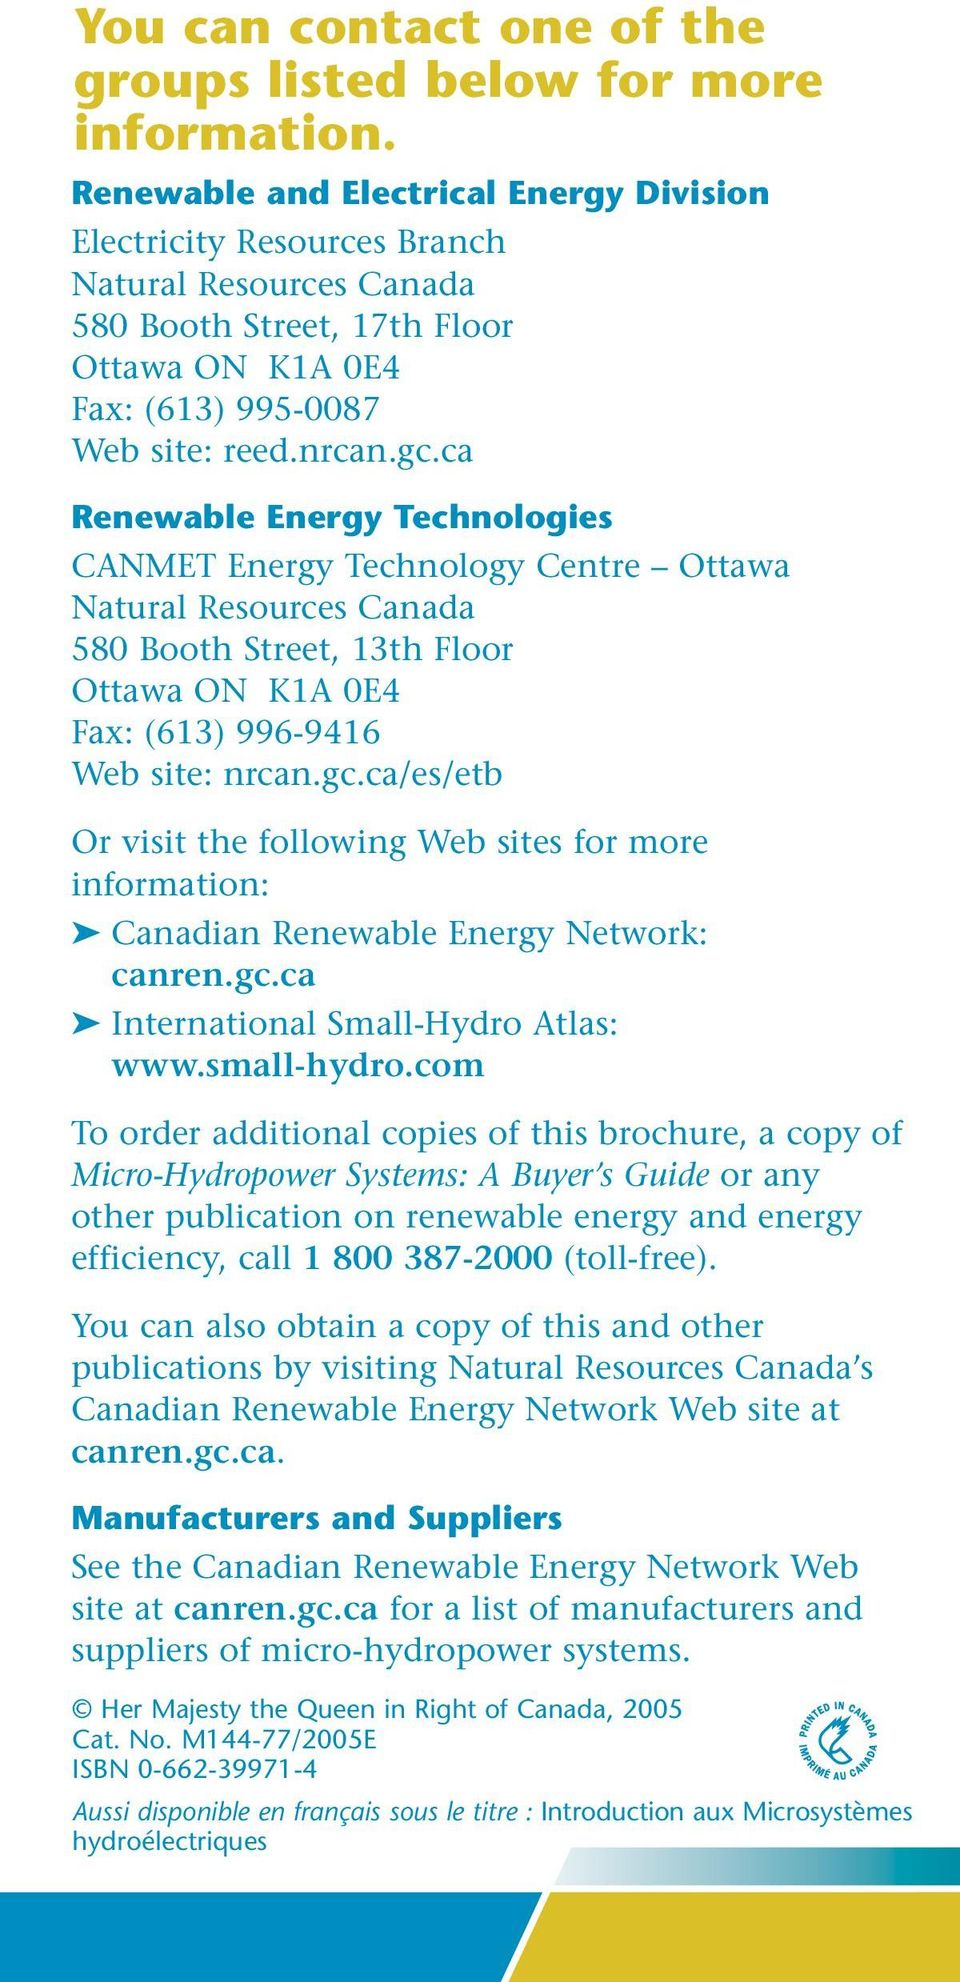 ca Renewable Energy Technologies CANMET Energy Technology Centre Ottawa Natural Resources Canada 580 Booth Street, 13th Floor Ottawa ON K1A 0E4 Fax: (613) 996-9416 Web site: nrcan.gc.